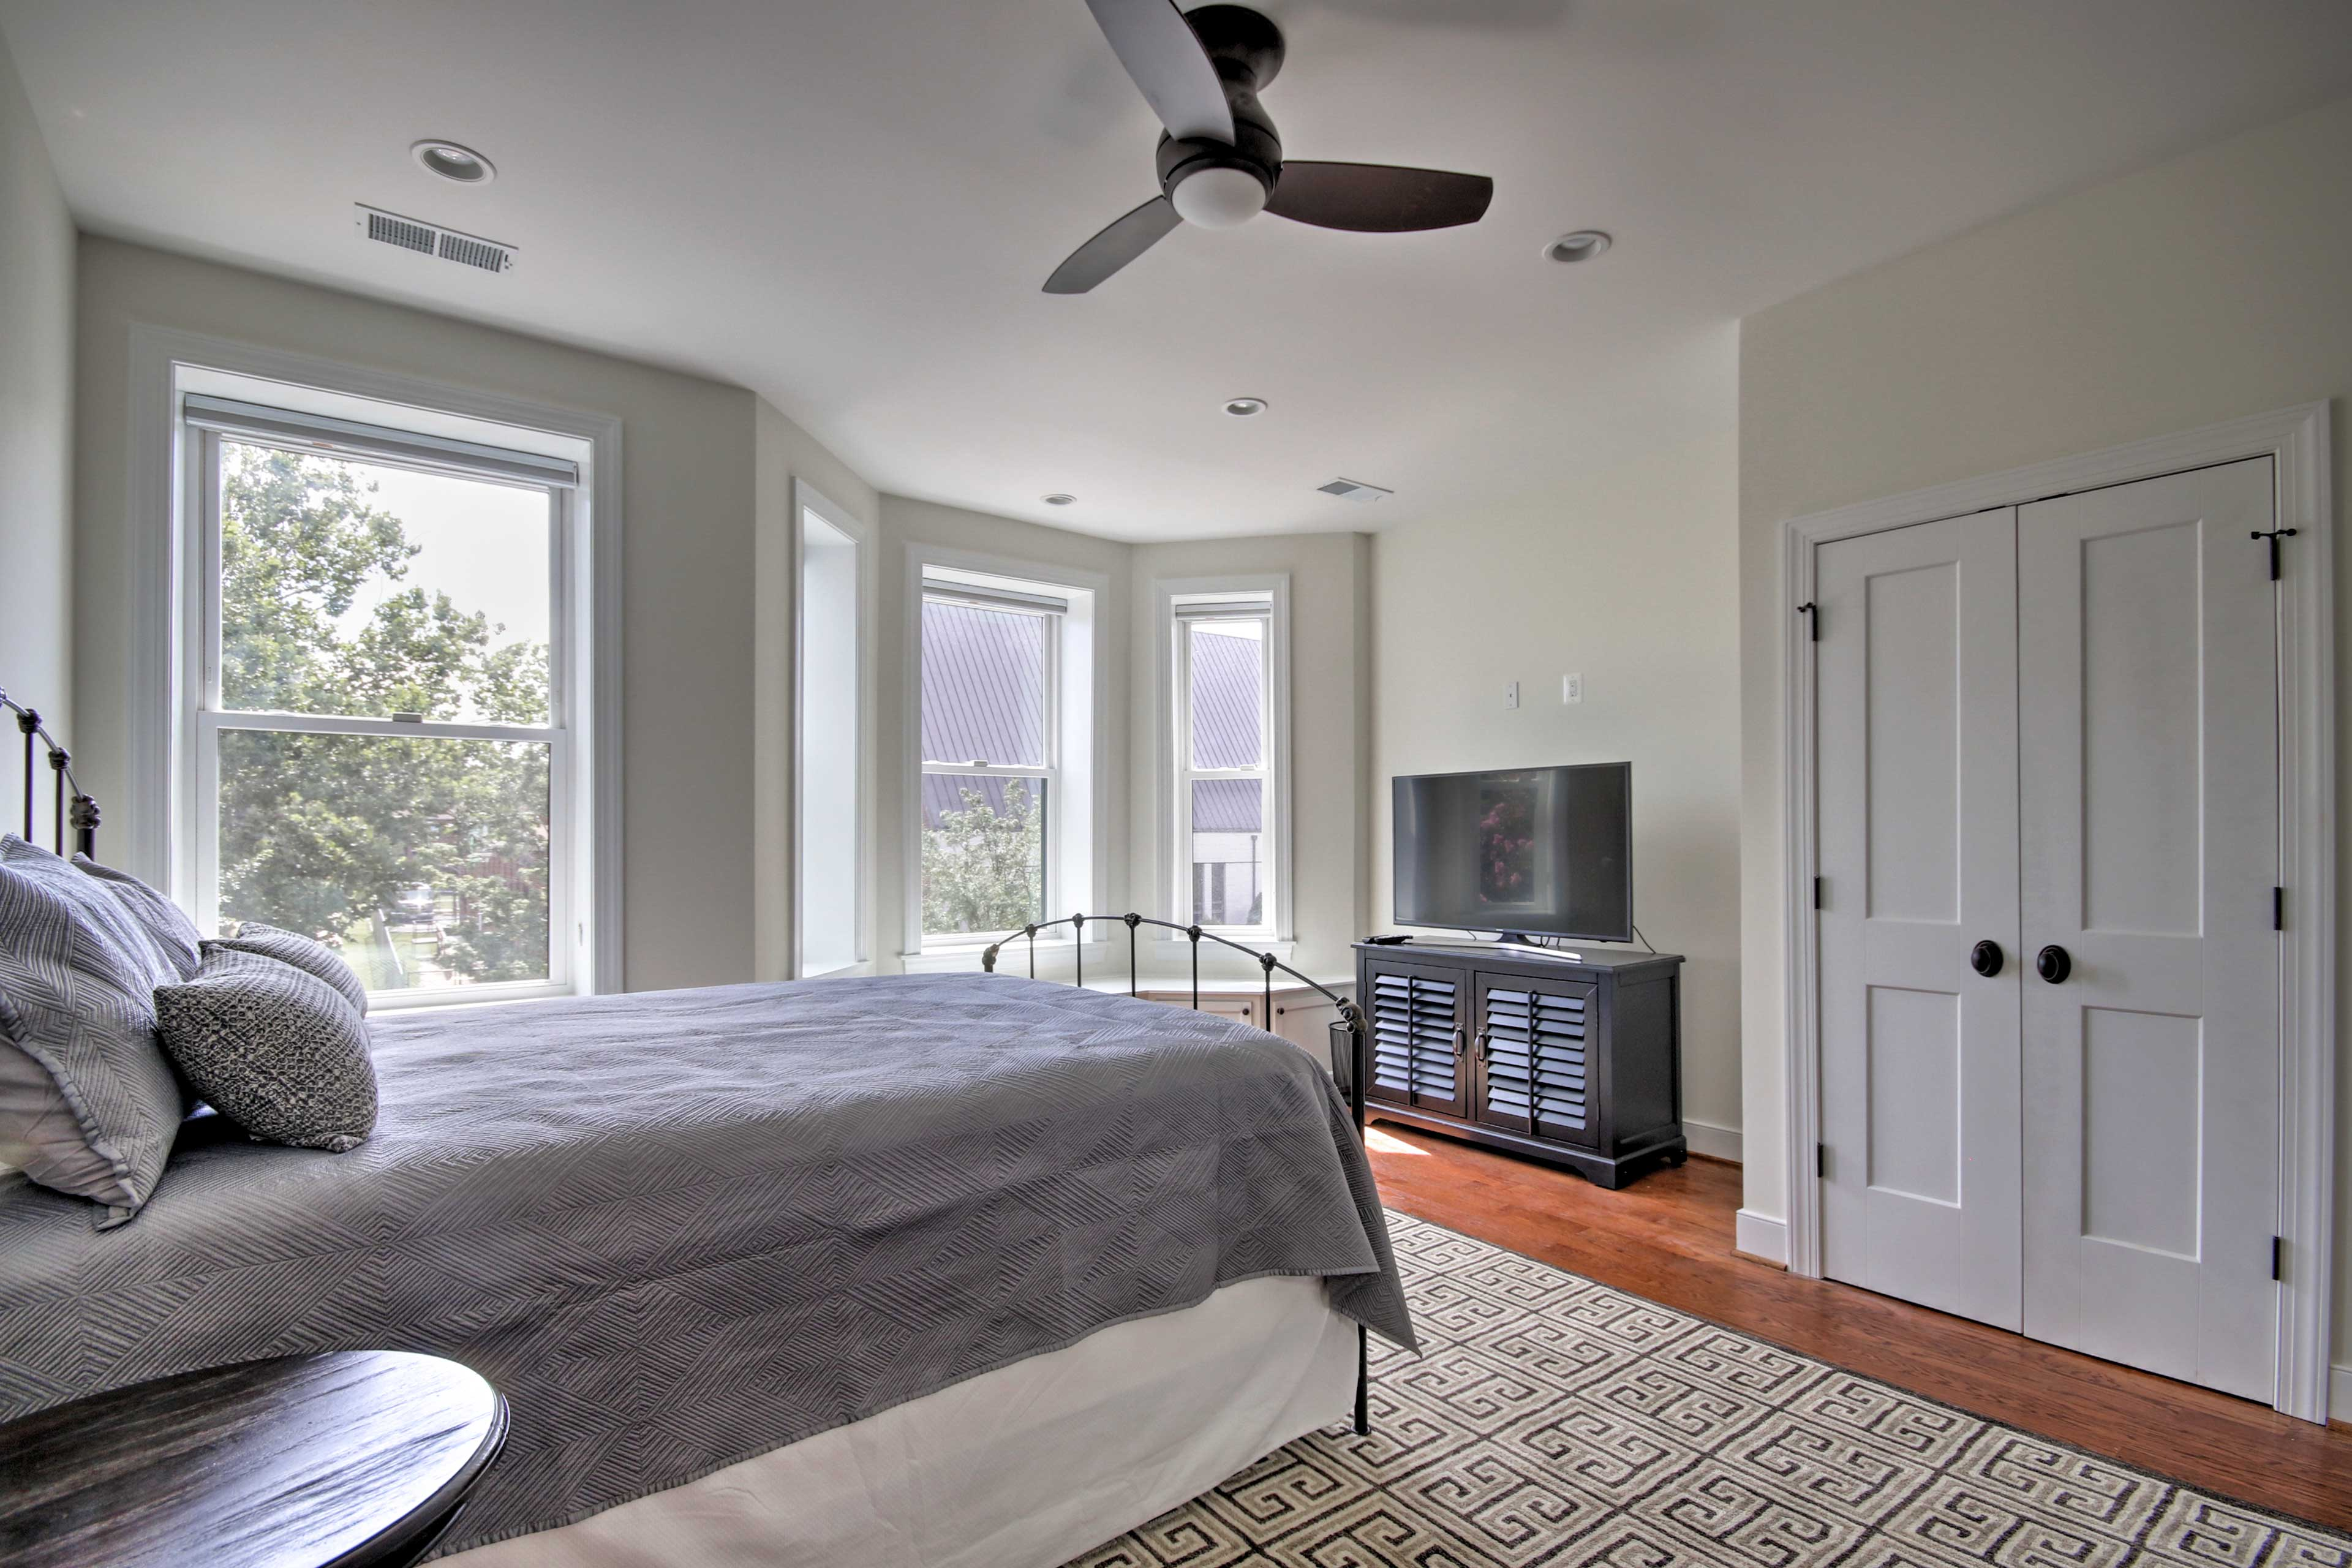 Rise and shine with ample natural sunlight.